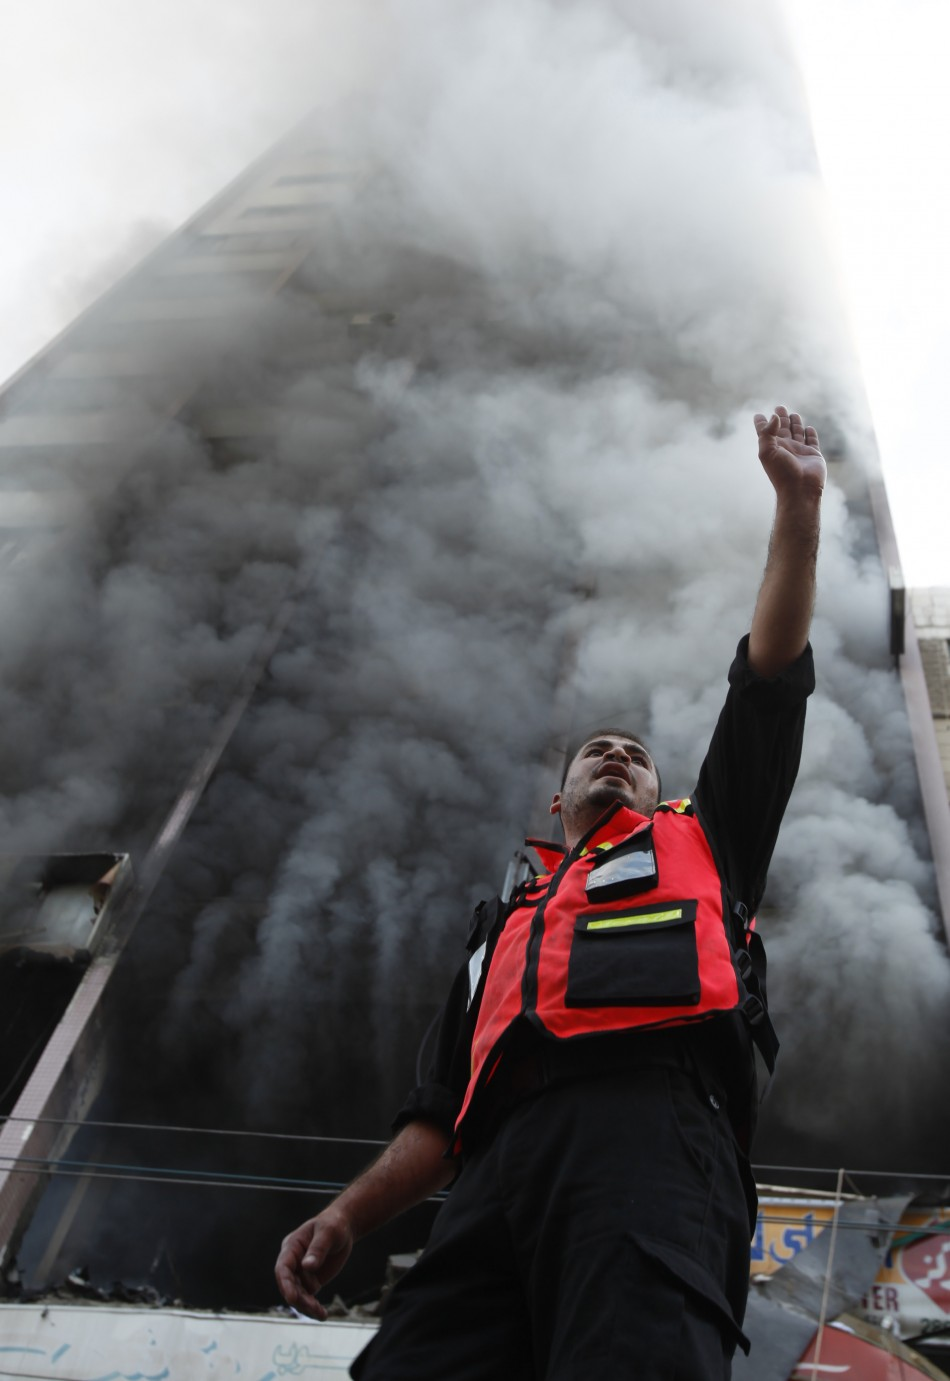 A Palestinian firefighter gestures as smoke rises out of a building that also houses international media offices,